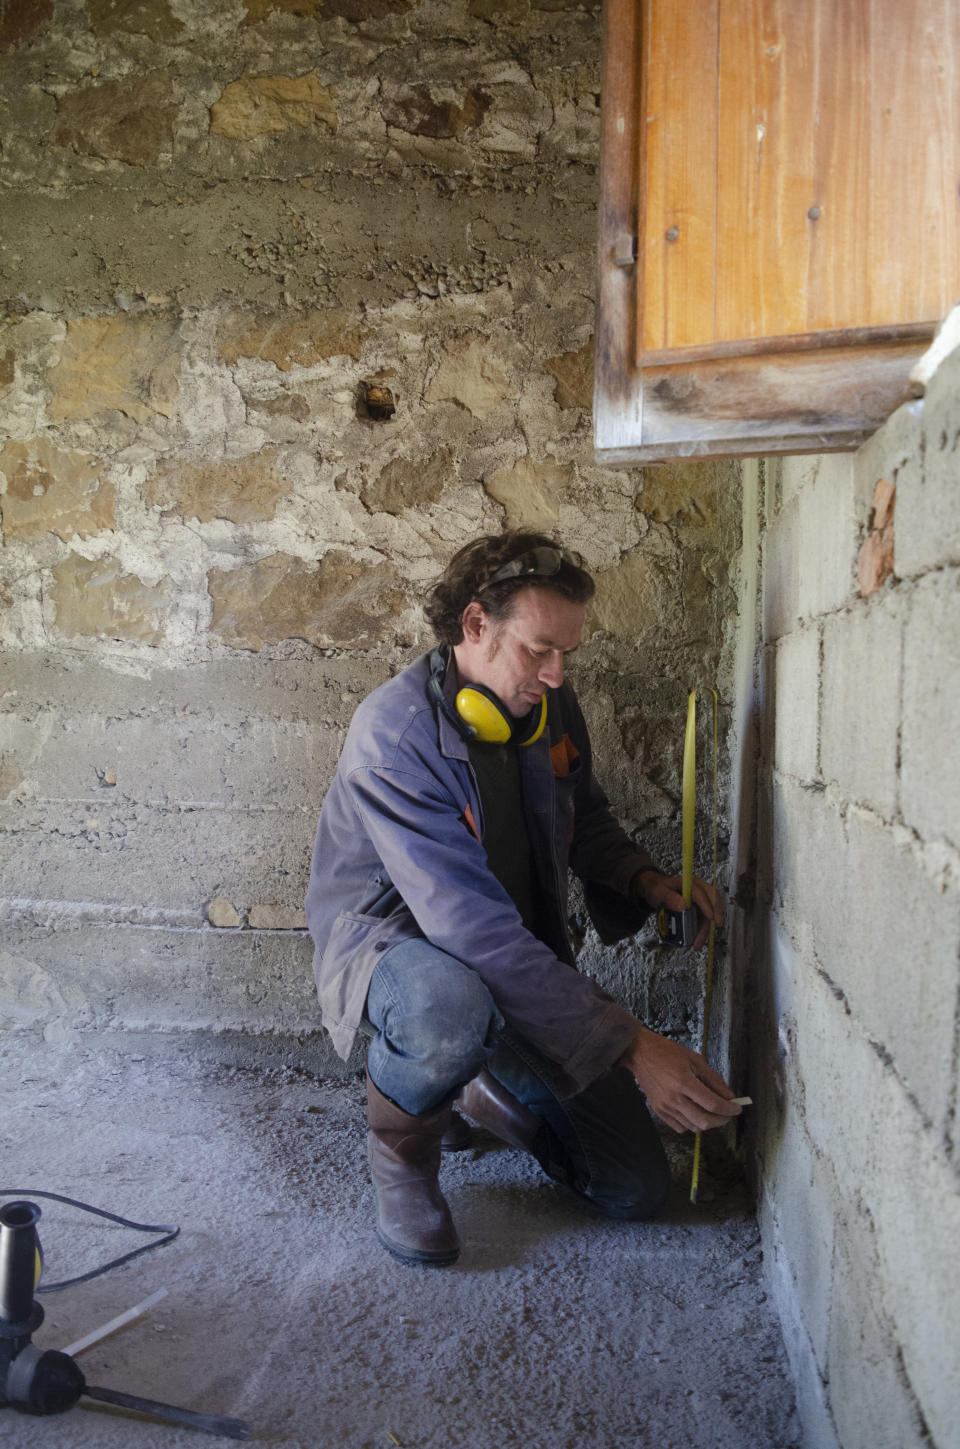 Cain Burdeau marks where he wants to place an electrical outlet on a wall inside a country home he is renovating in Castelbuono, Sicily, on April 8, 2021. (AP Photo/Audrey Rodeman)